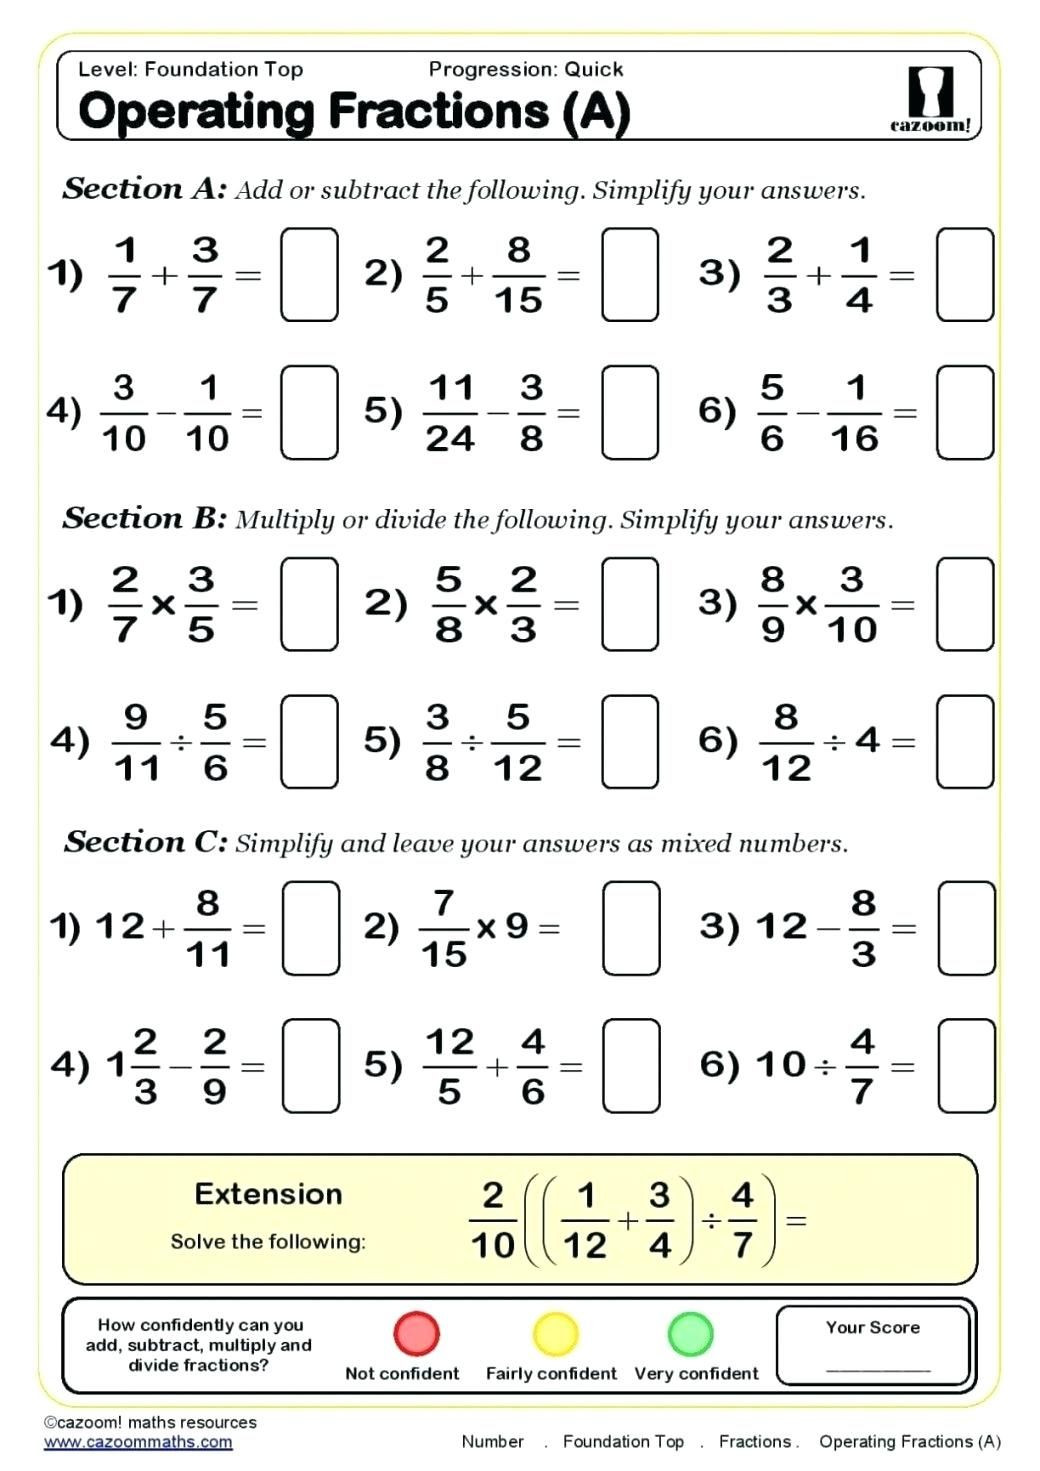 Ratio Worksheets 6th Grade Free Math Worksheets for 6th Grade Ratios